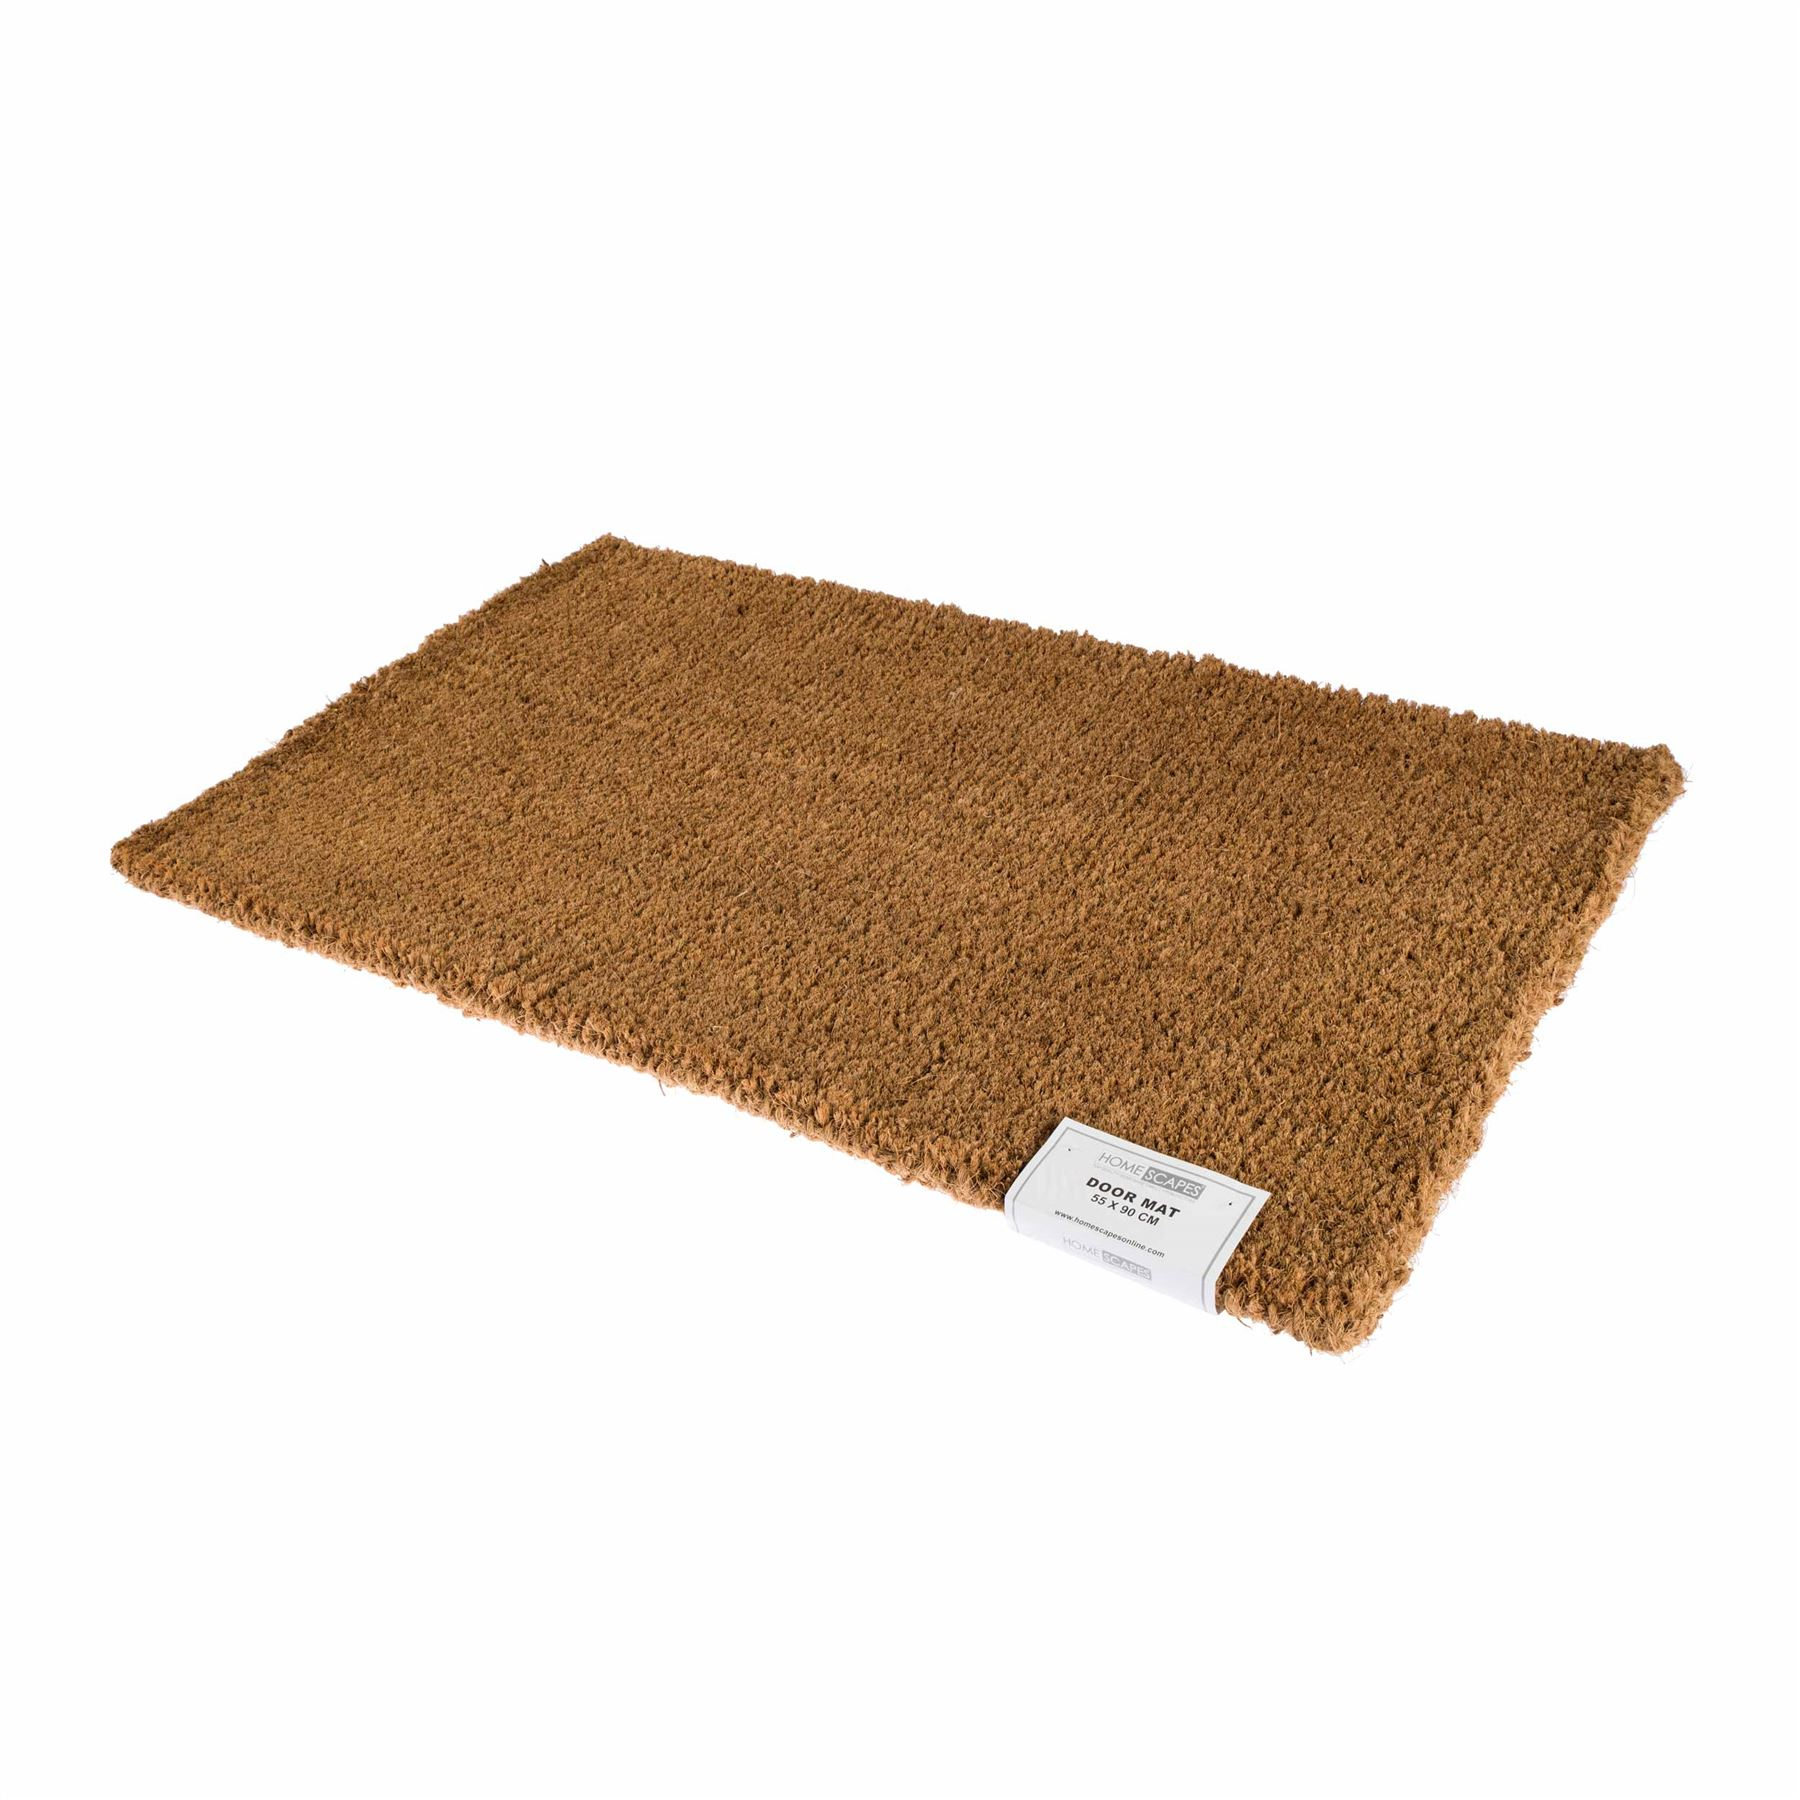 Coir rubber door mat indoor outdoor use large wrought iron for Door mats amazon